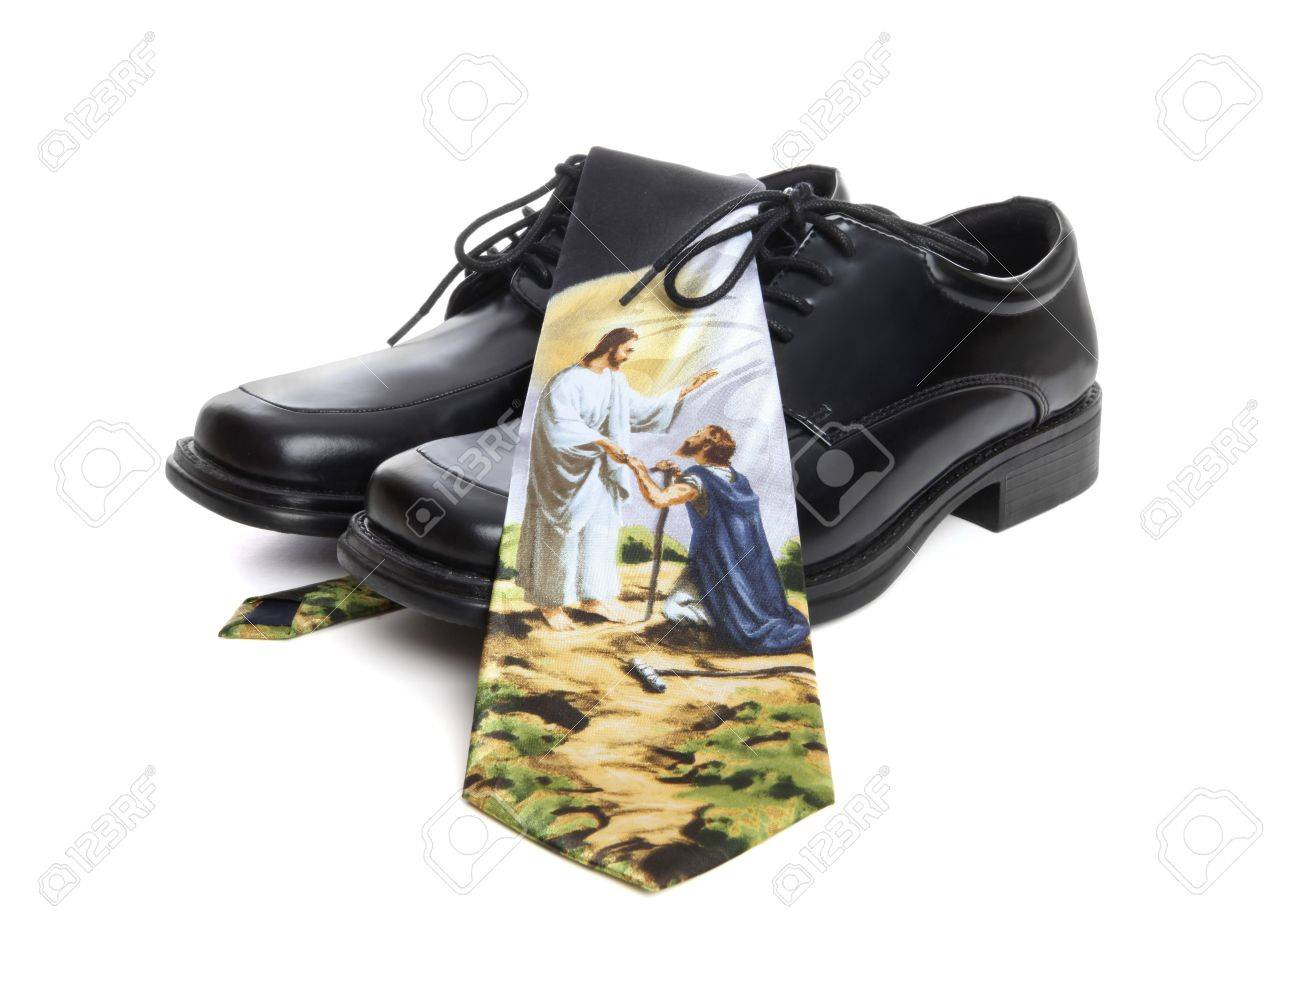 A business man's shoes and religion themed tie over white background Stock Photo - 6640102